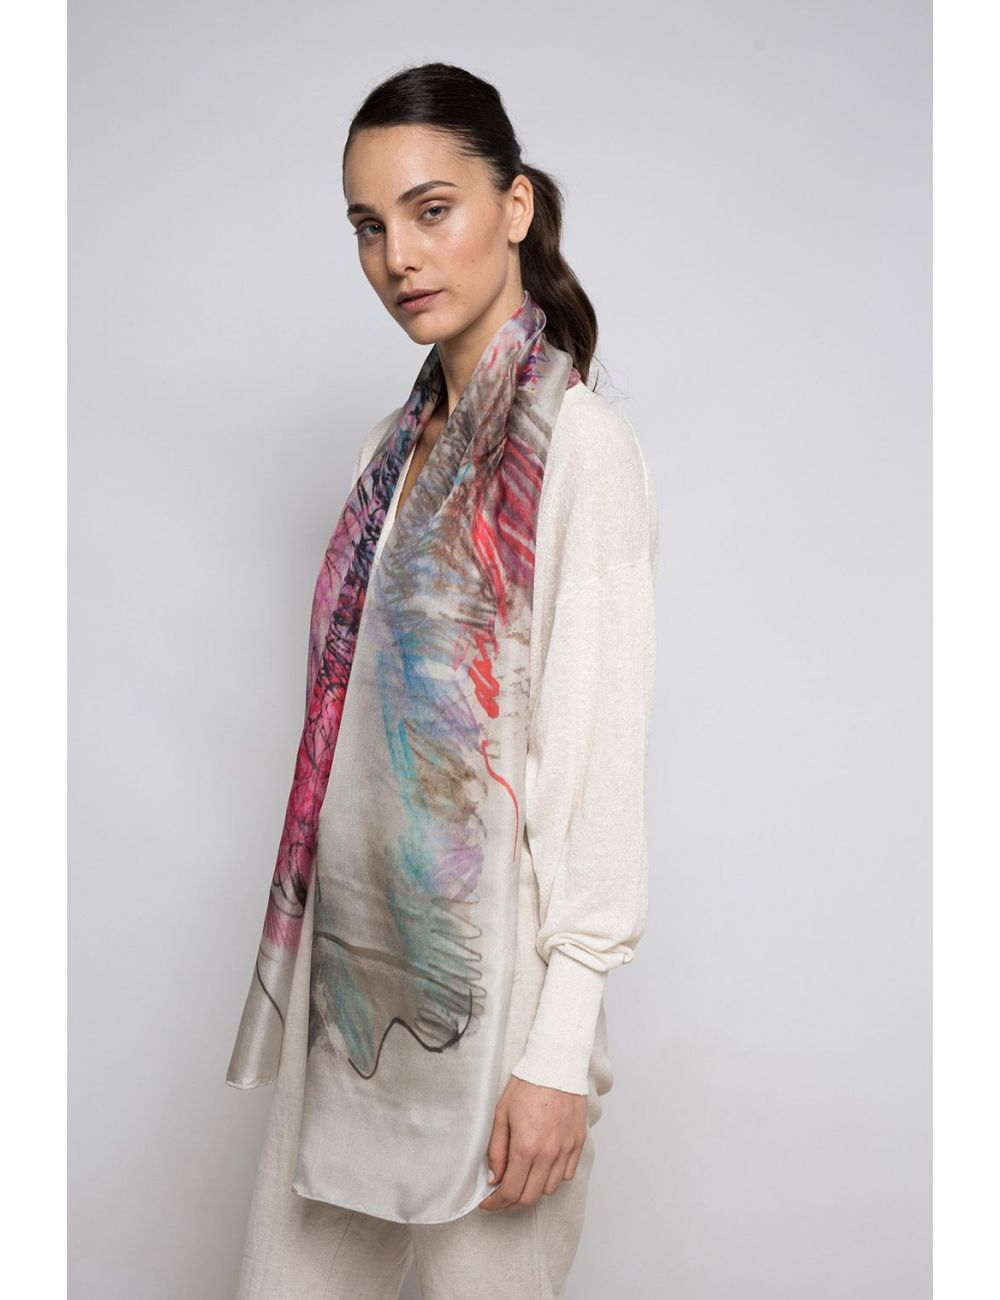 """Boc de Paris"" silk scarf - elegant and stylish"